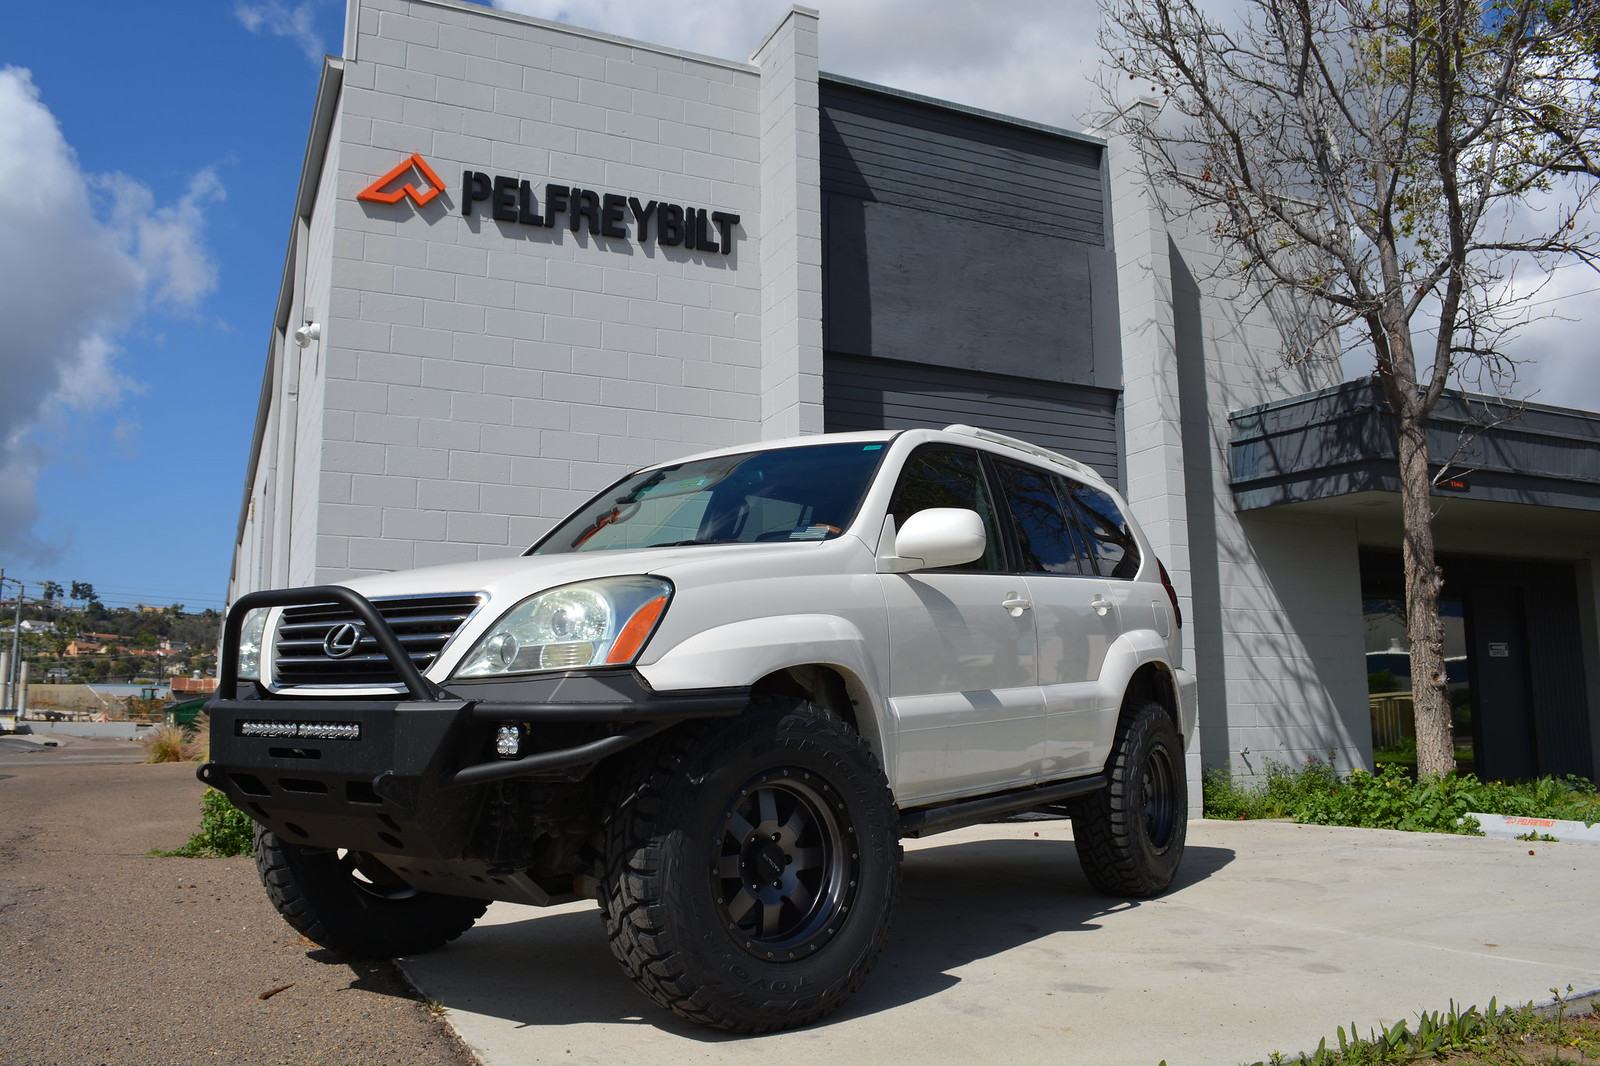 bumper gx470 front pelfreybilt support tube hybrid road etc sales info steel bumpers forum ih8mud